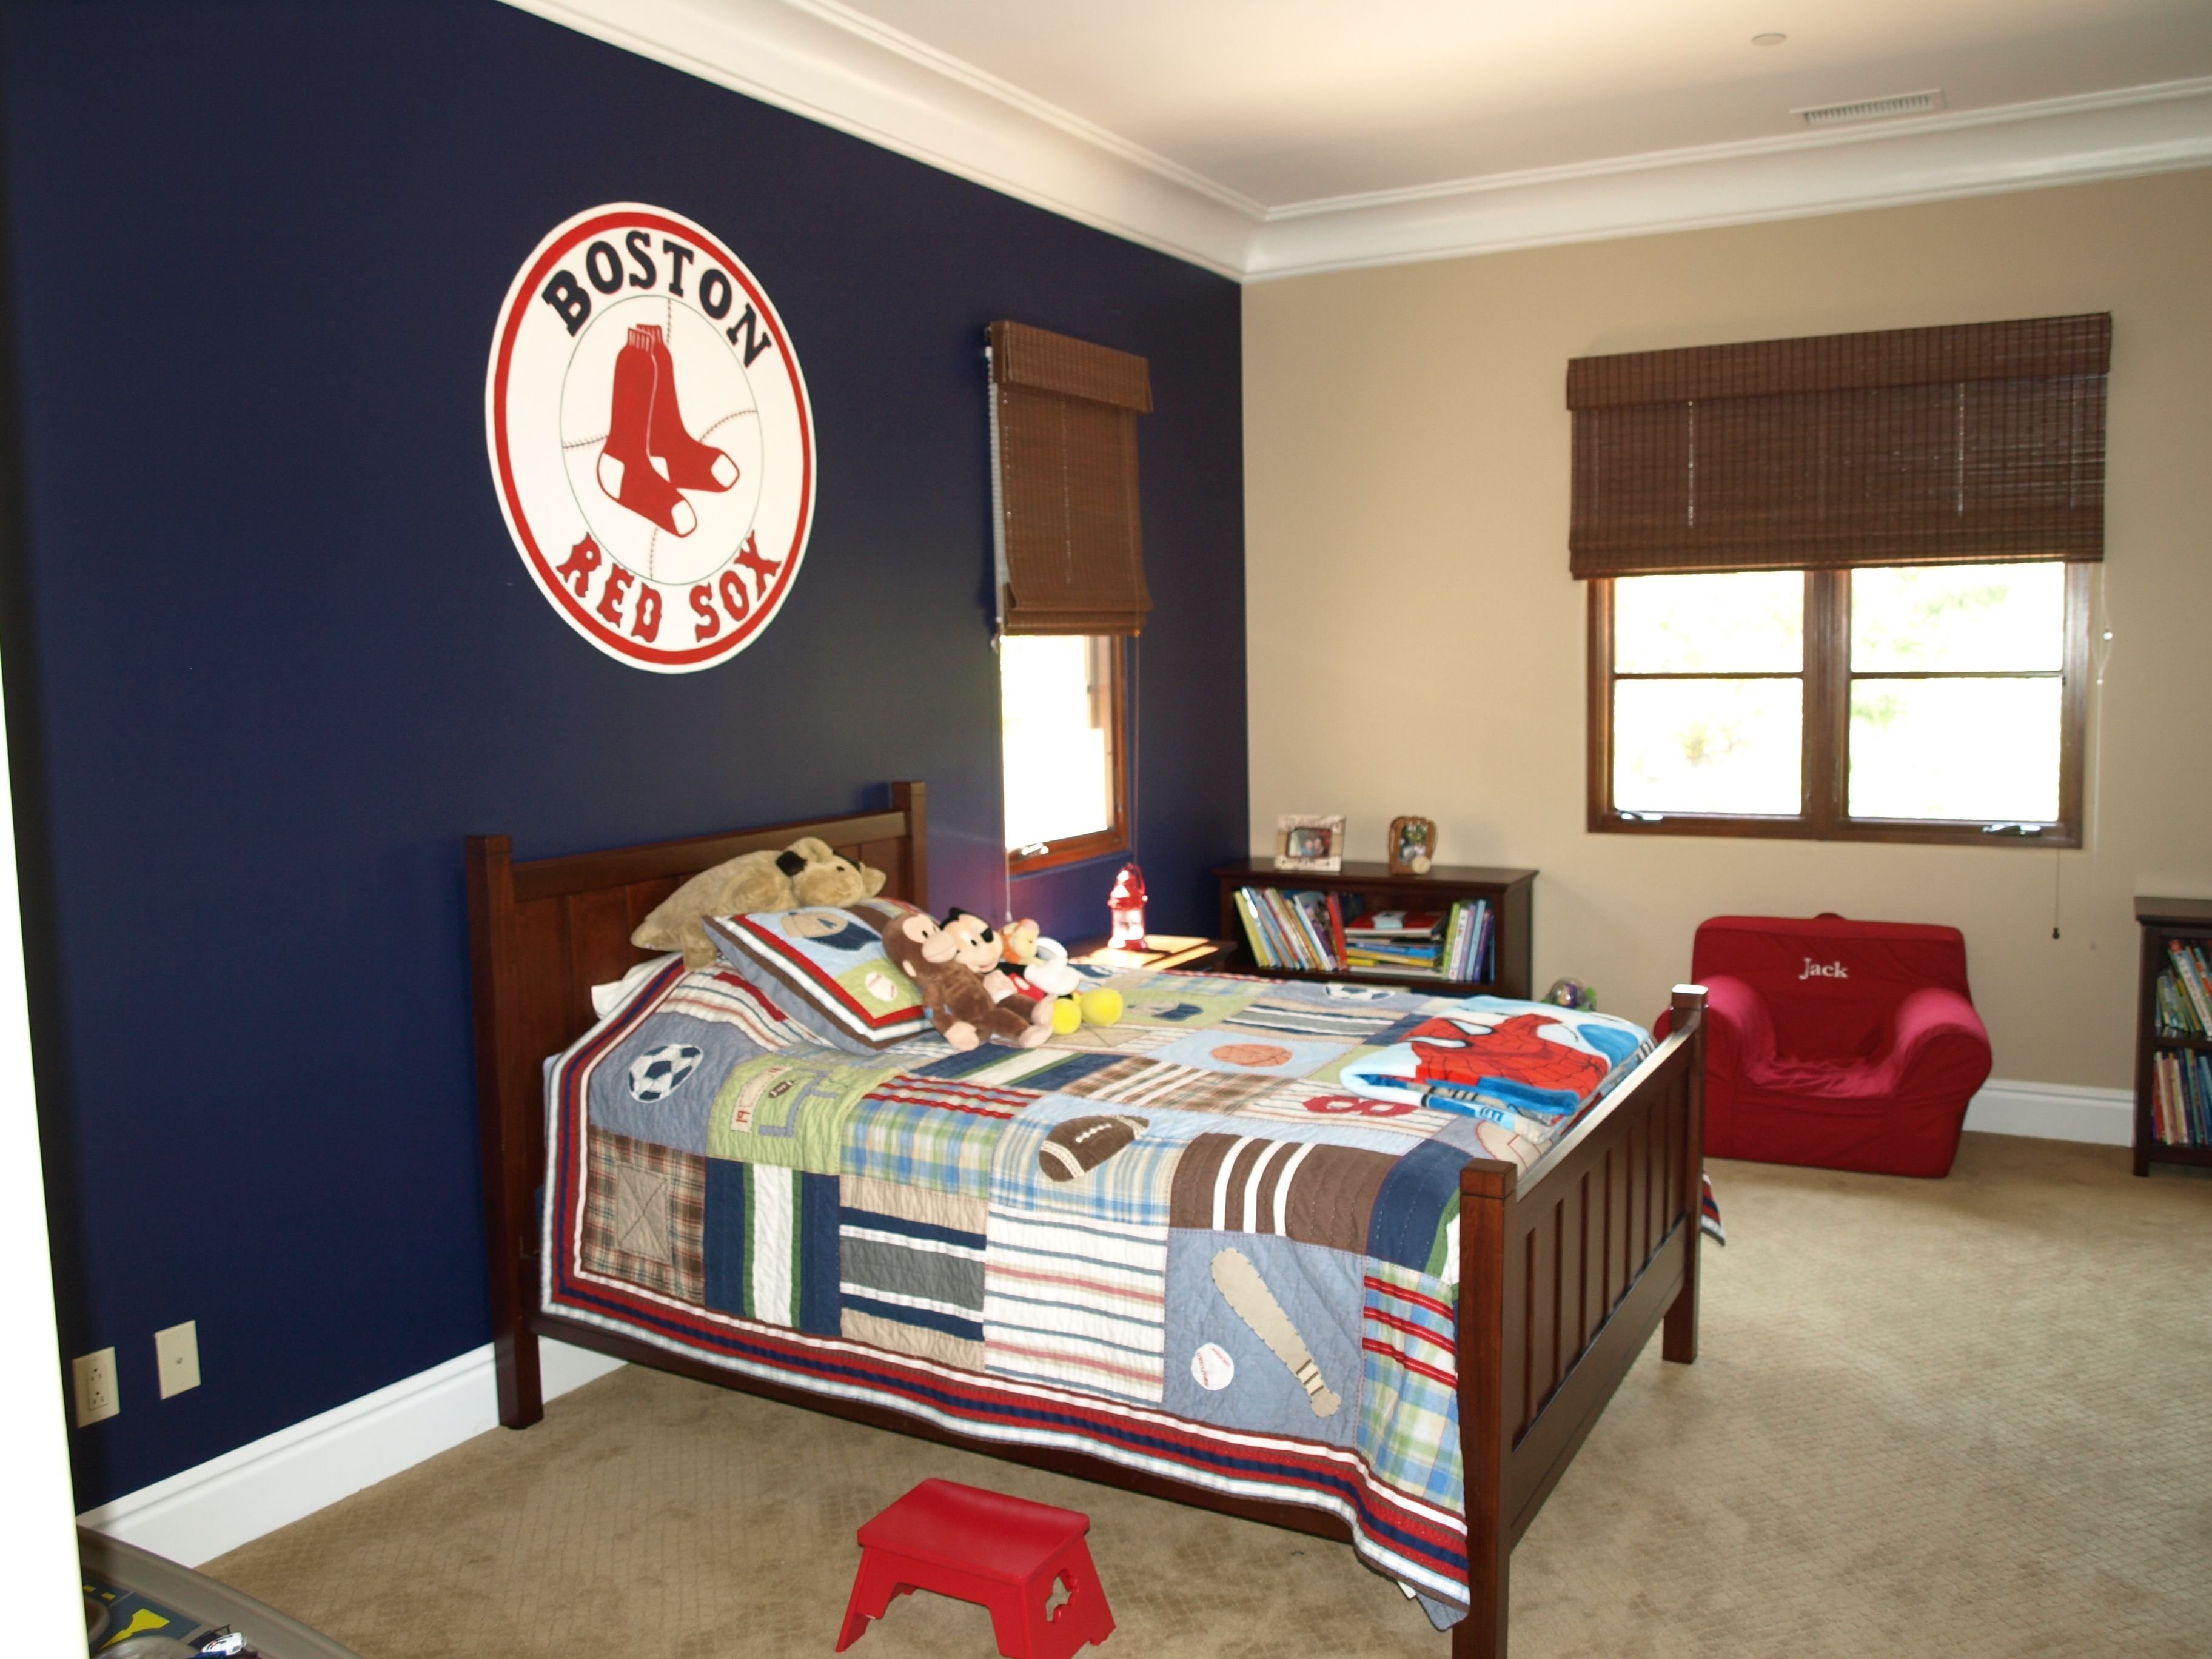 Best Baseball Room Take Down The Sox Shi And Put Up Some With Pictures